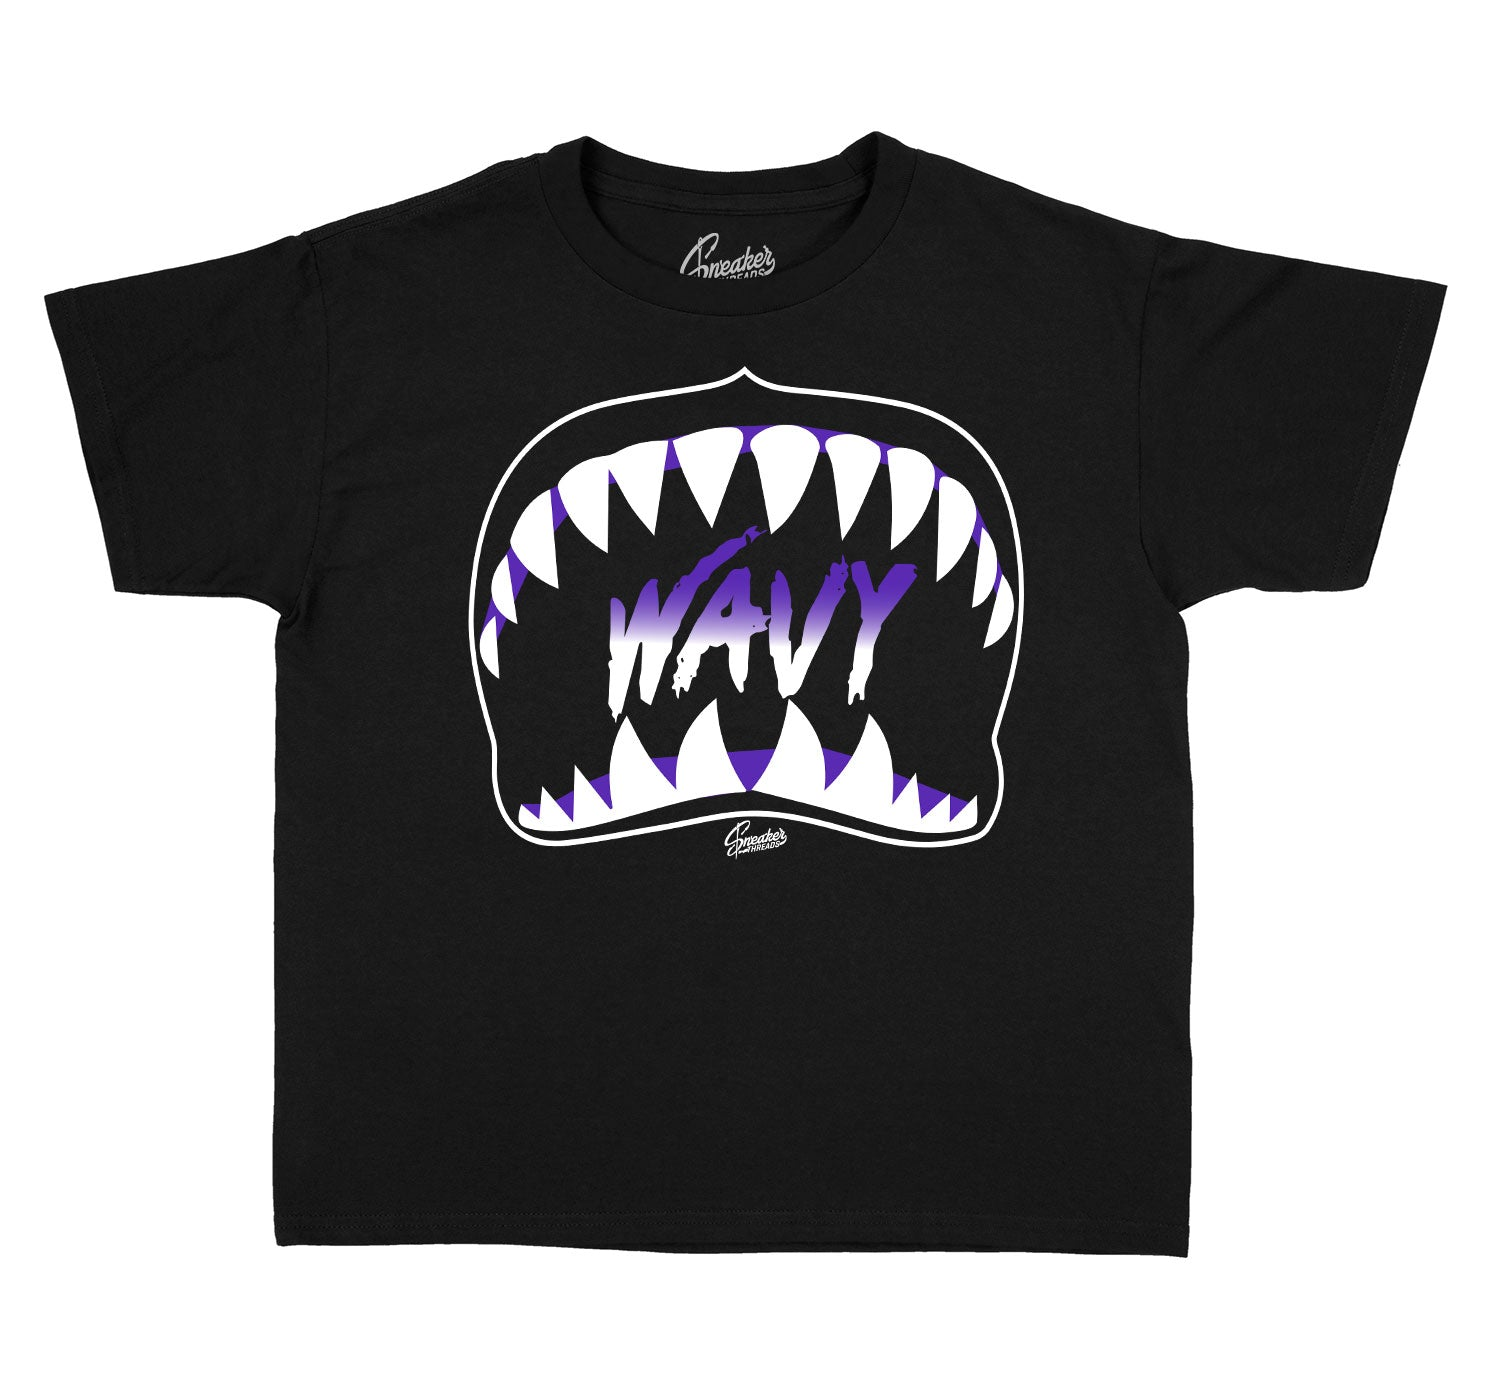 Kids - Dark Concord 12 Wavy Shirt